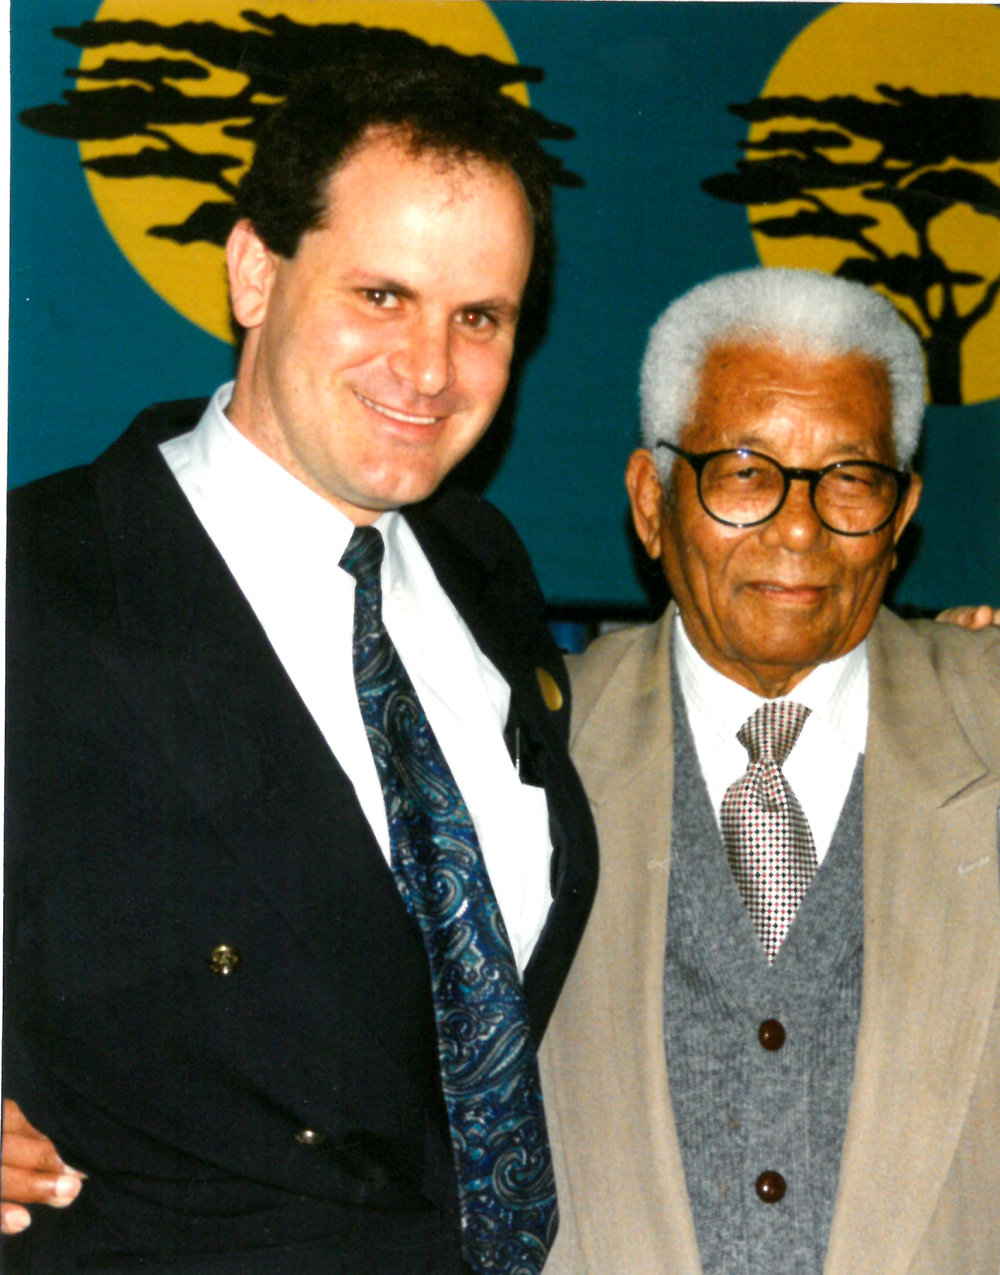 James Urdang and Nelson Mandela.jpg